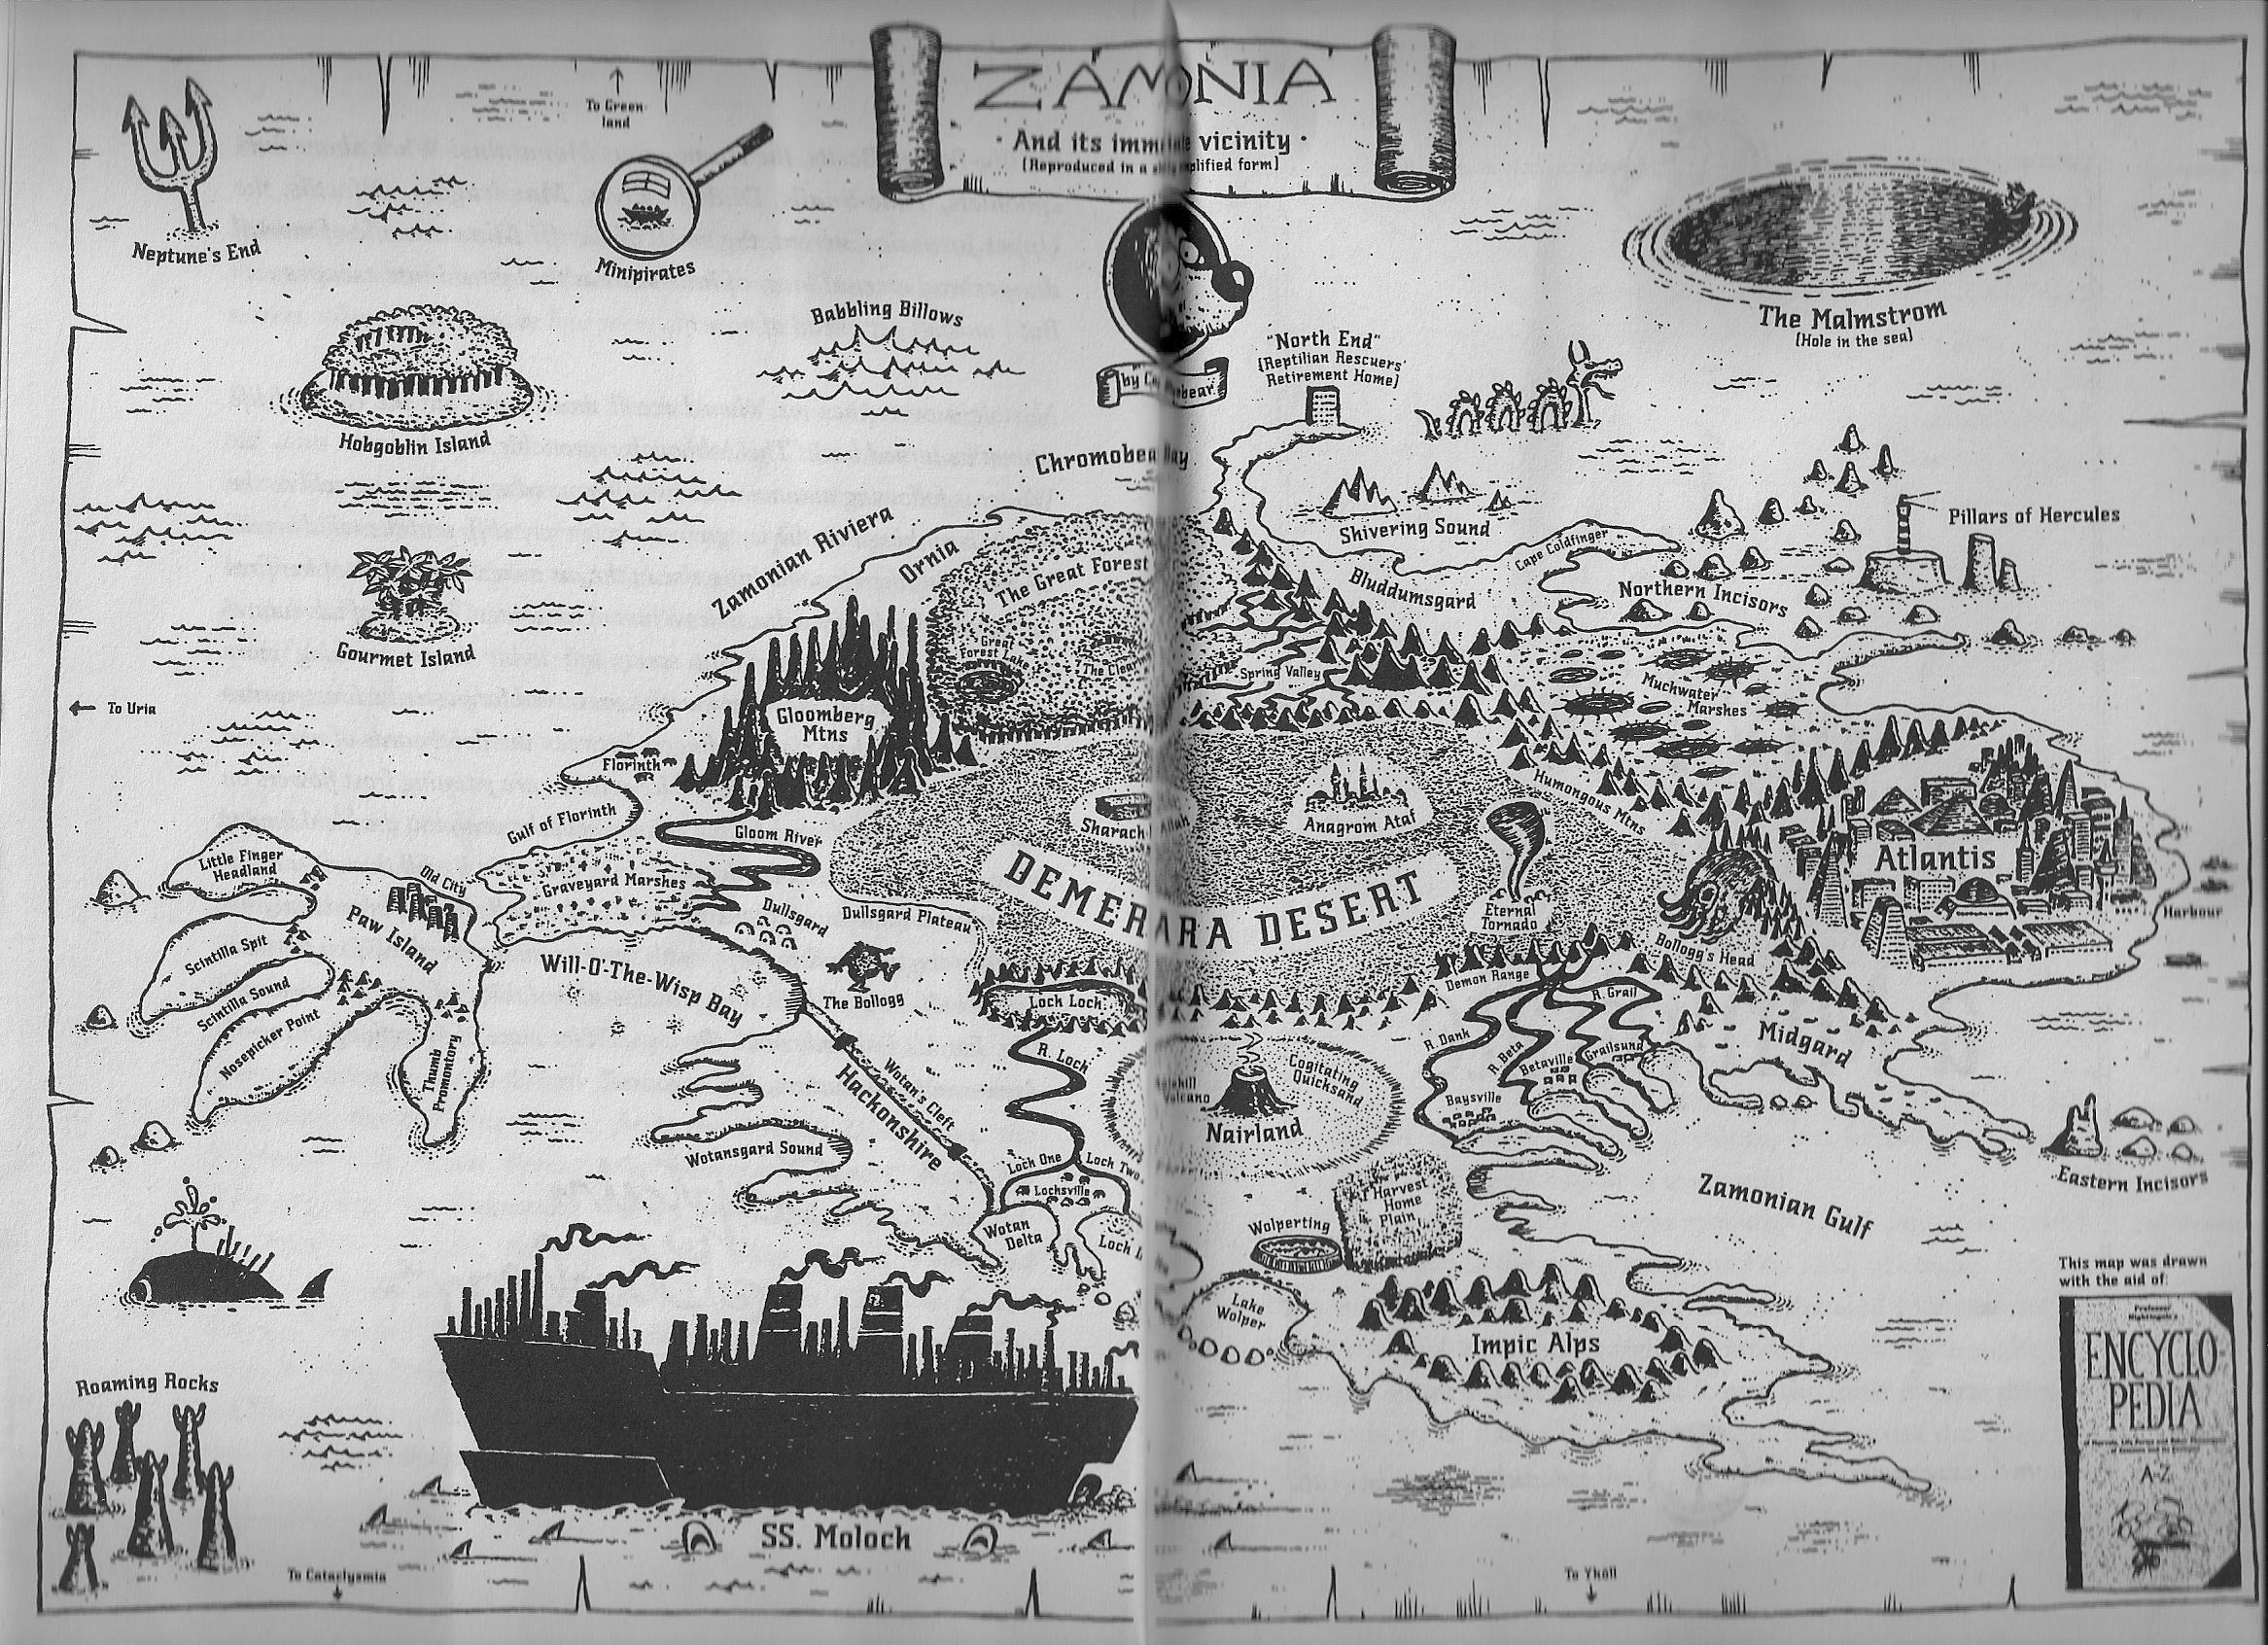 Map of Zamonia from the wonderful book The 13 Lives of Captain